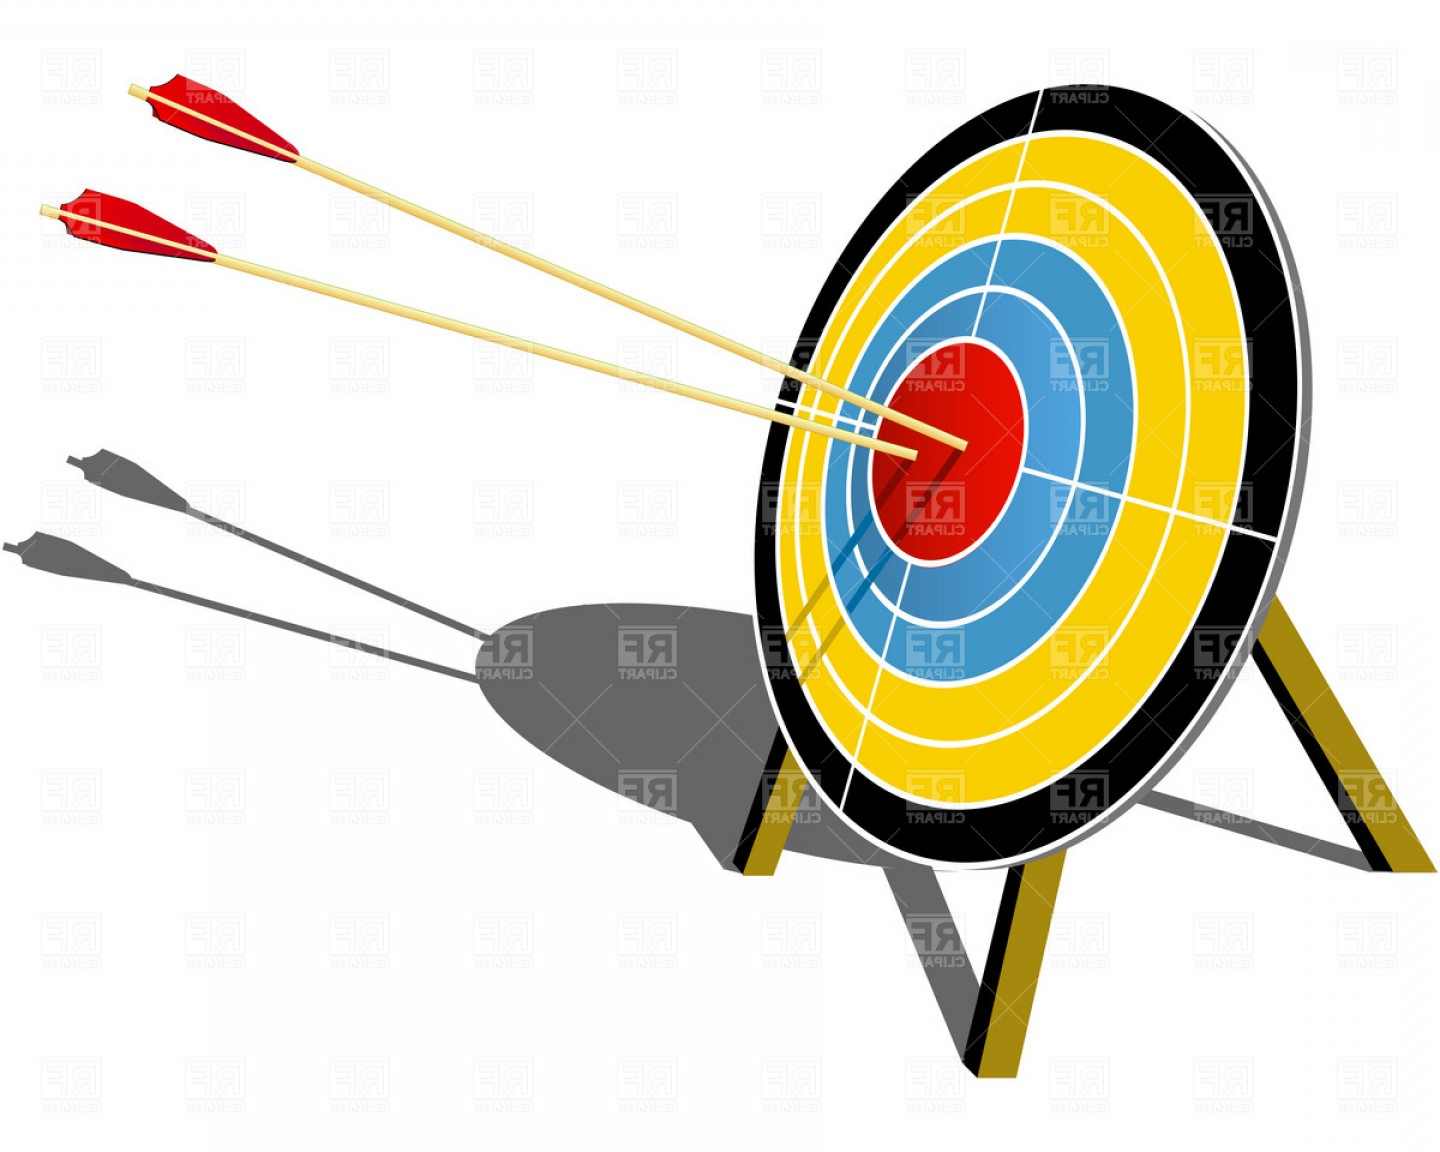 Archery Target Vector at GetDrawings | Free download